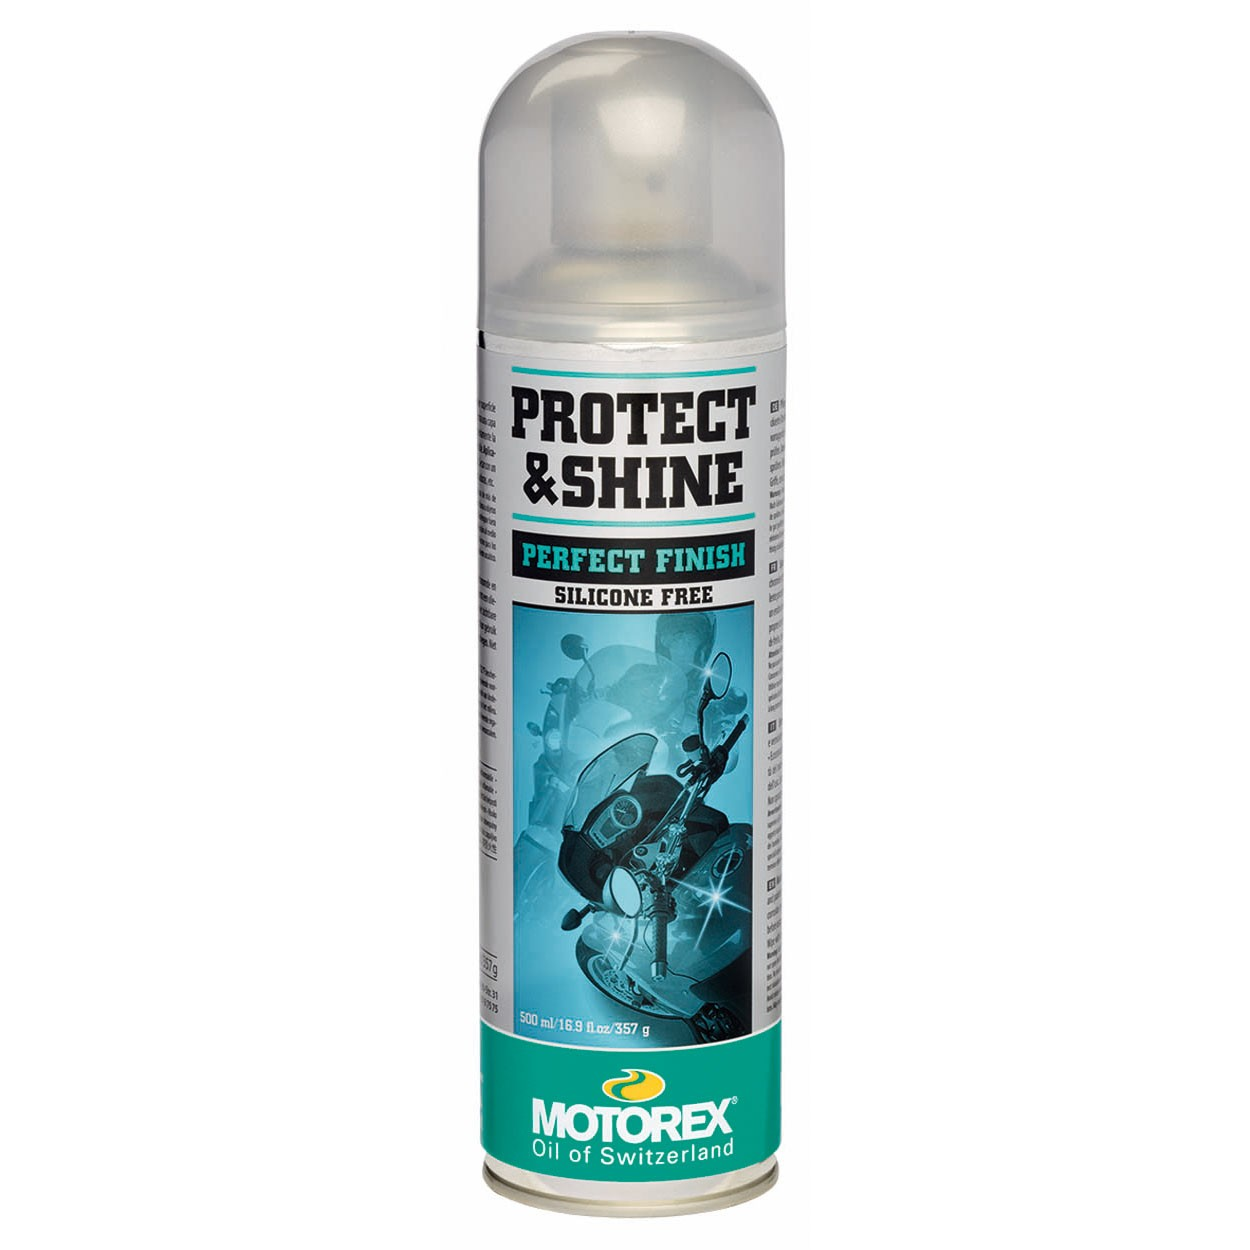 Motorex Protect & Shine